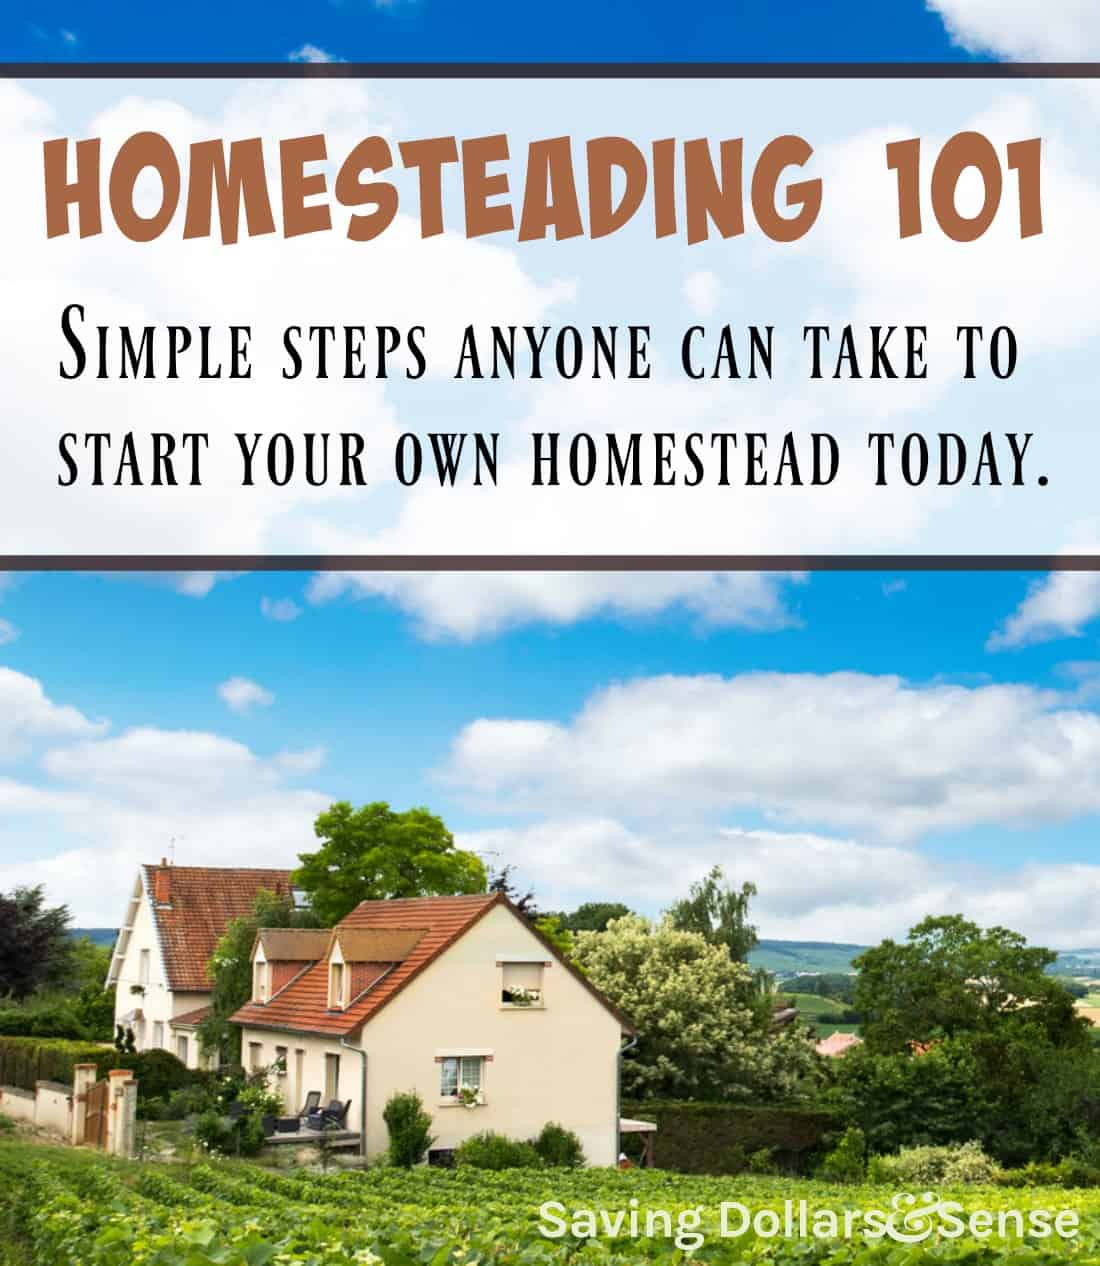 How to Begin Homesteading Without a Farm